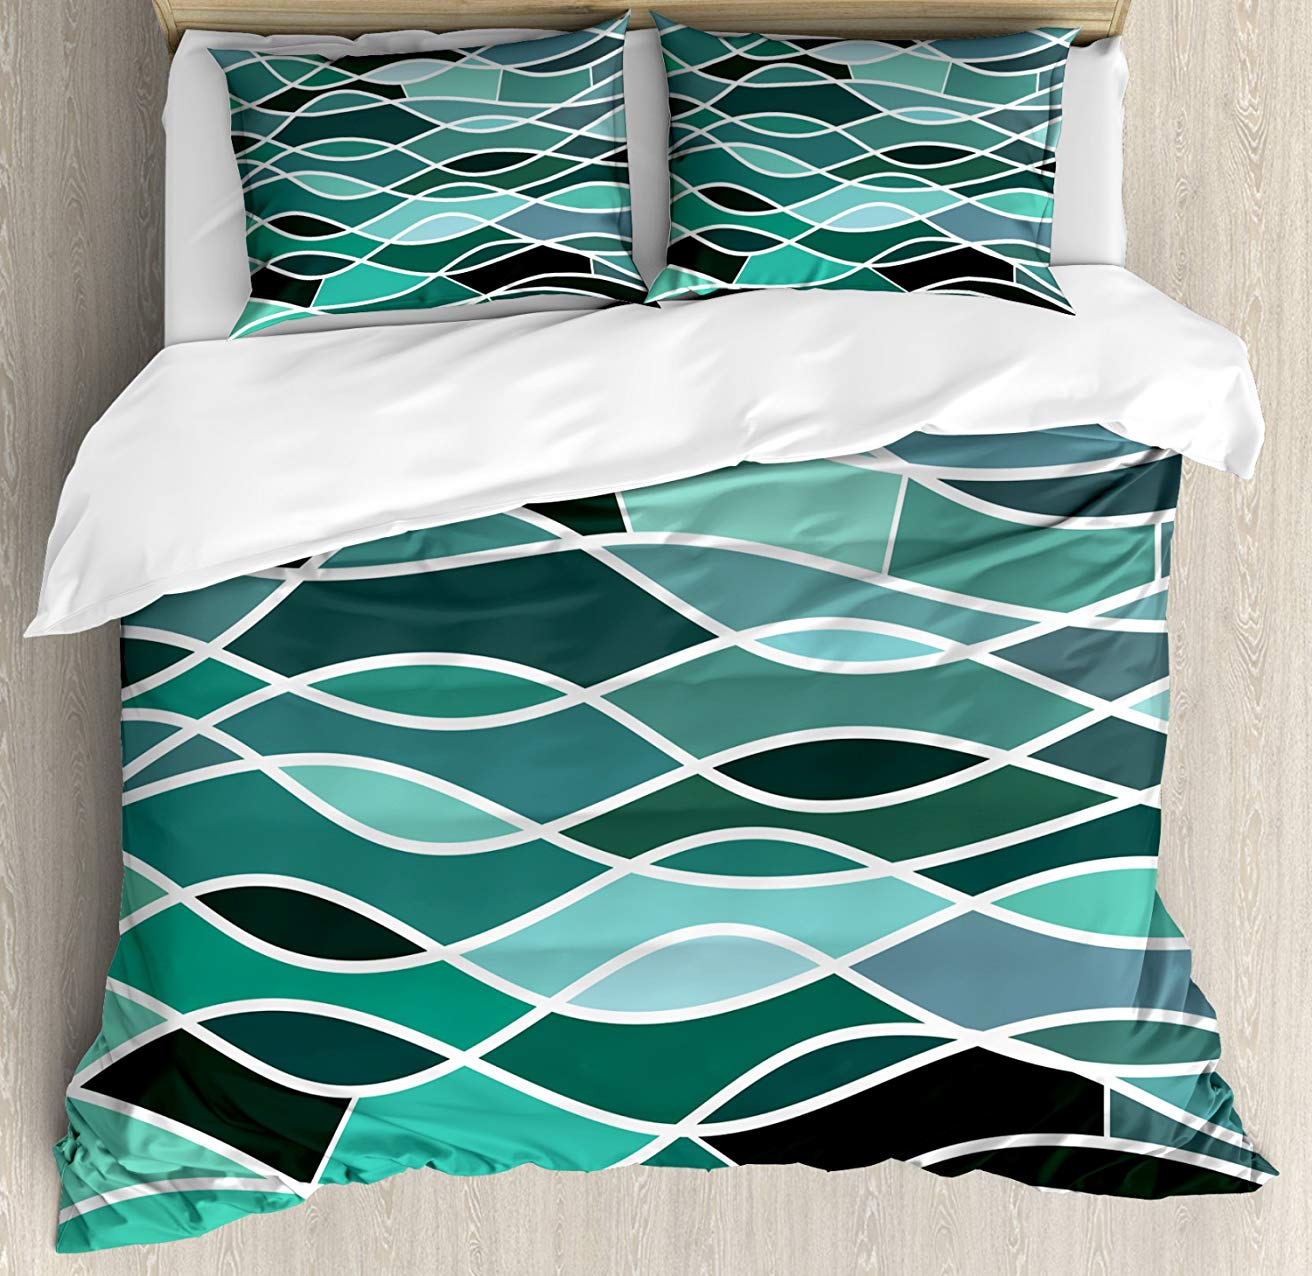 Seafoam Duvet Cover Set Stained Glass Pattern with Wavy Lines and Mosaic Abstract Geometric Composition 3 Piece Bedding SetSeafoam Duvet Cover Set Stained Glass Pattern with Wavy Lines and Mosaic Abstract Geometric Composition 3 Piece Bedding Set